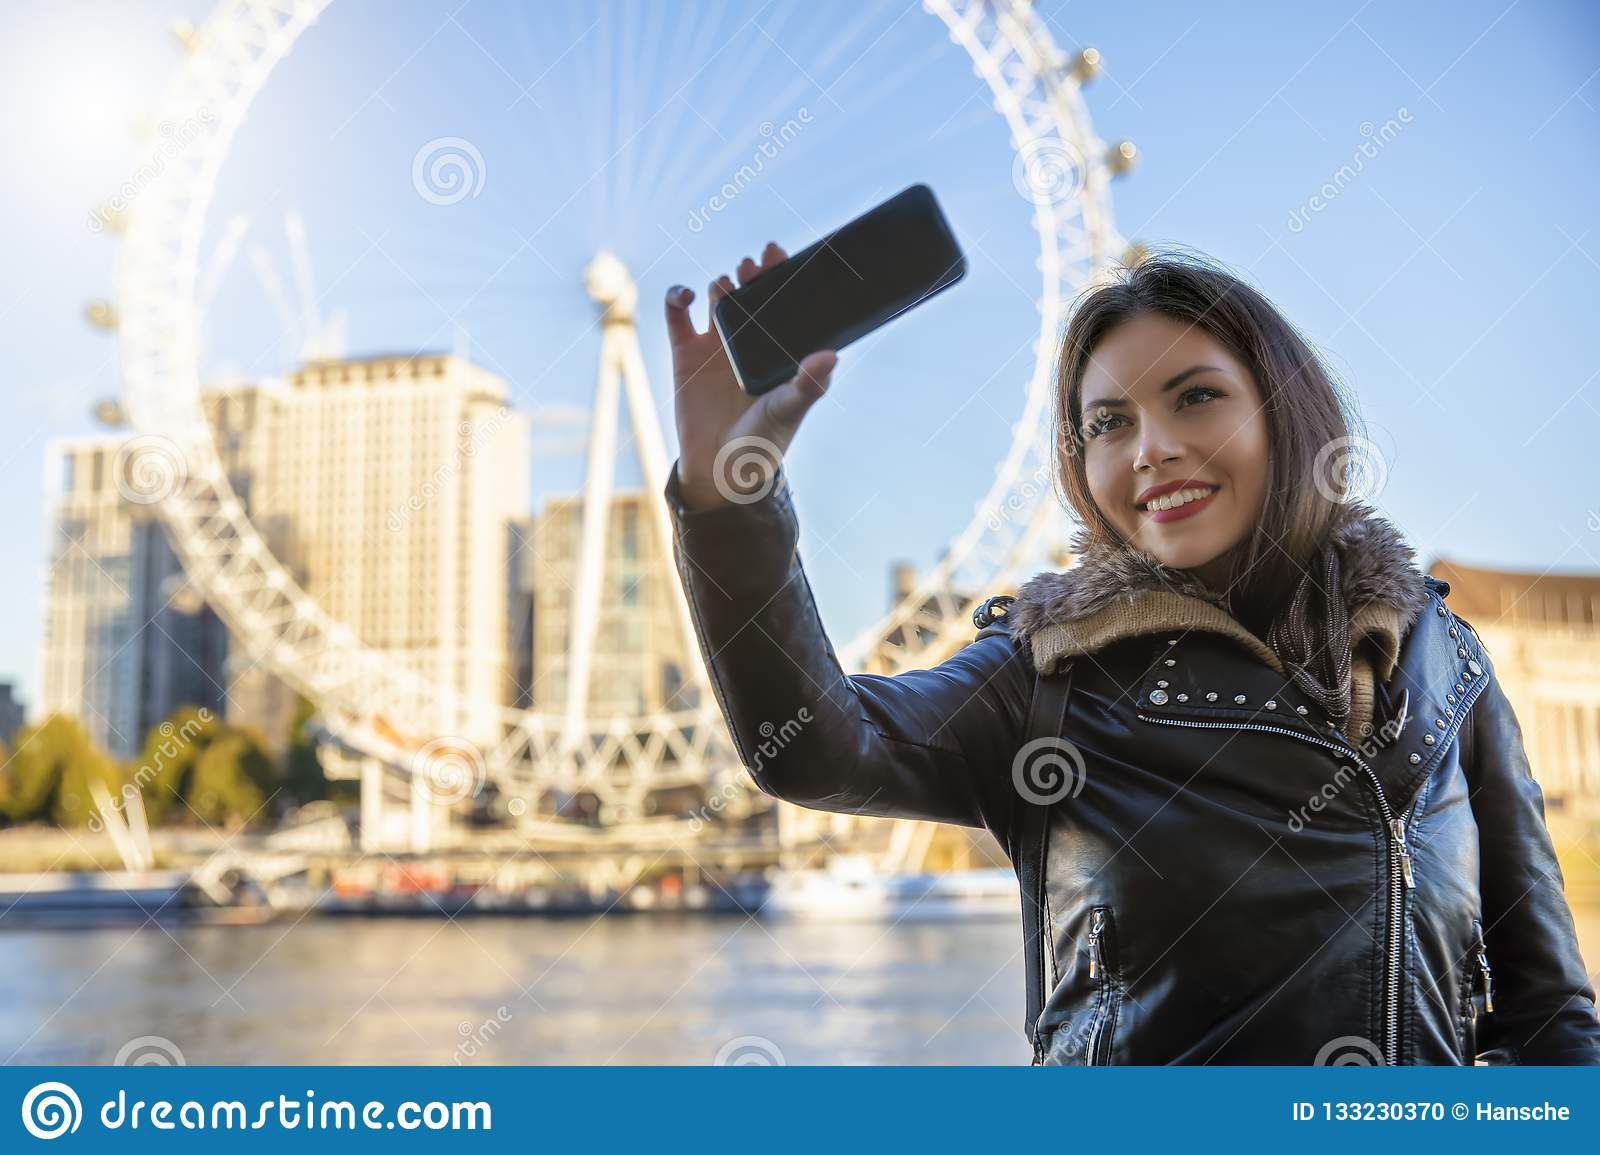 Young traveller woman talks a selfie in front of major sightseeing attractions in London, UK